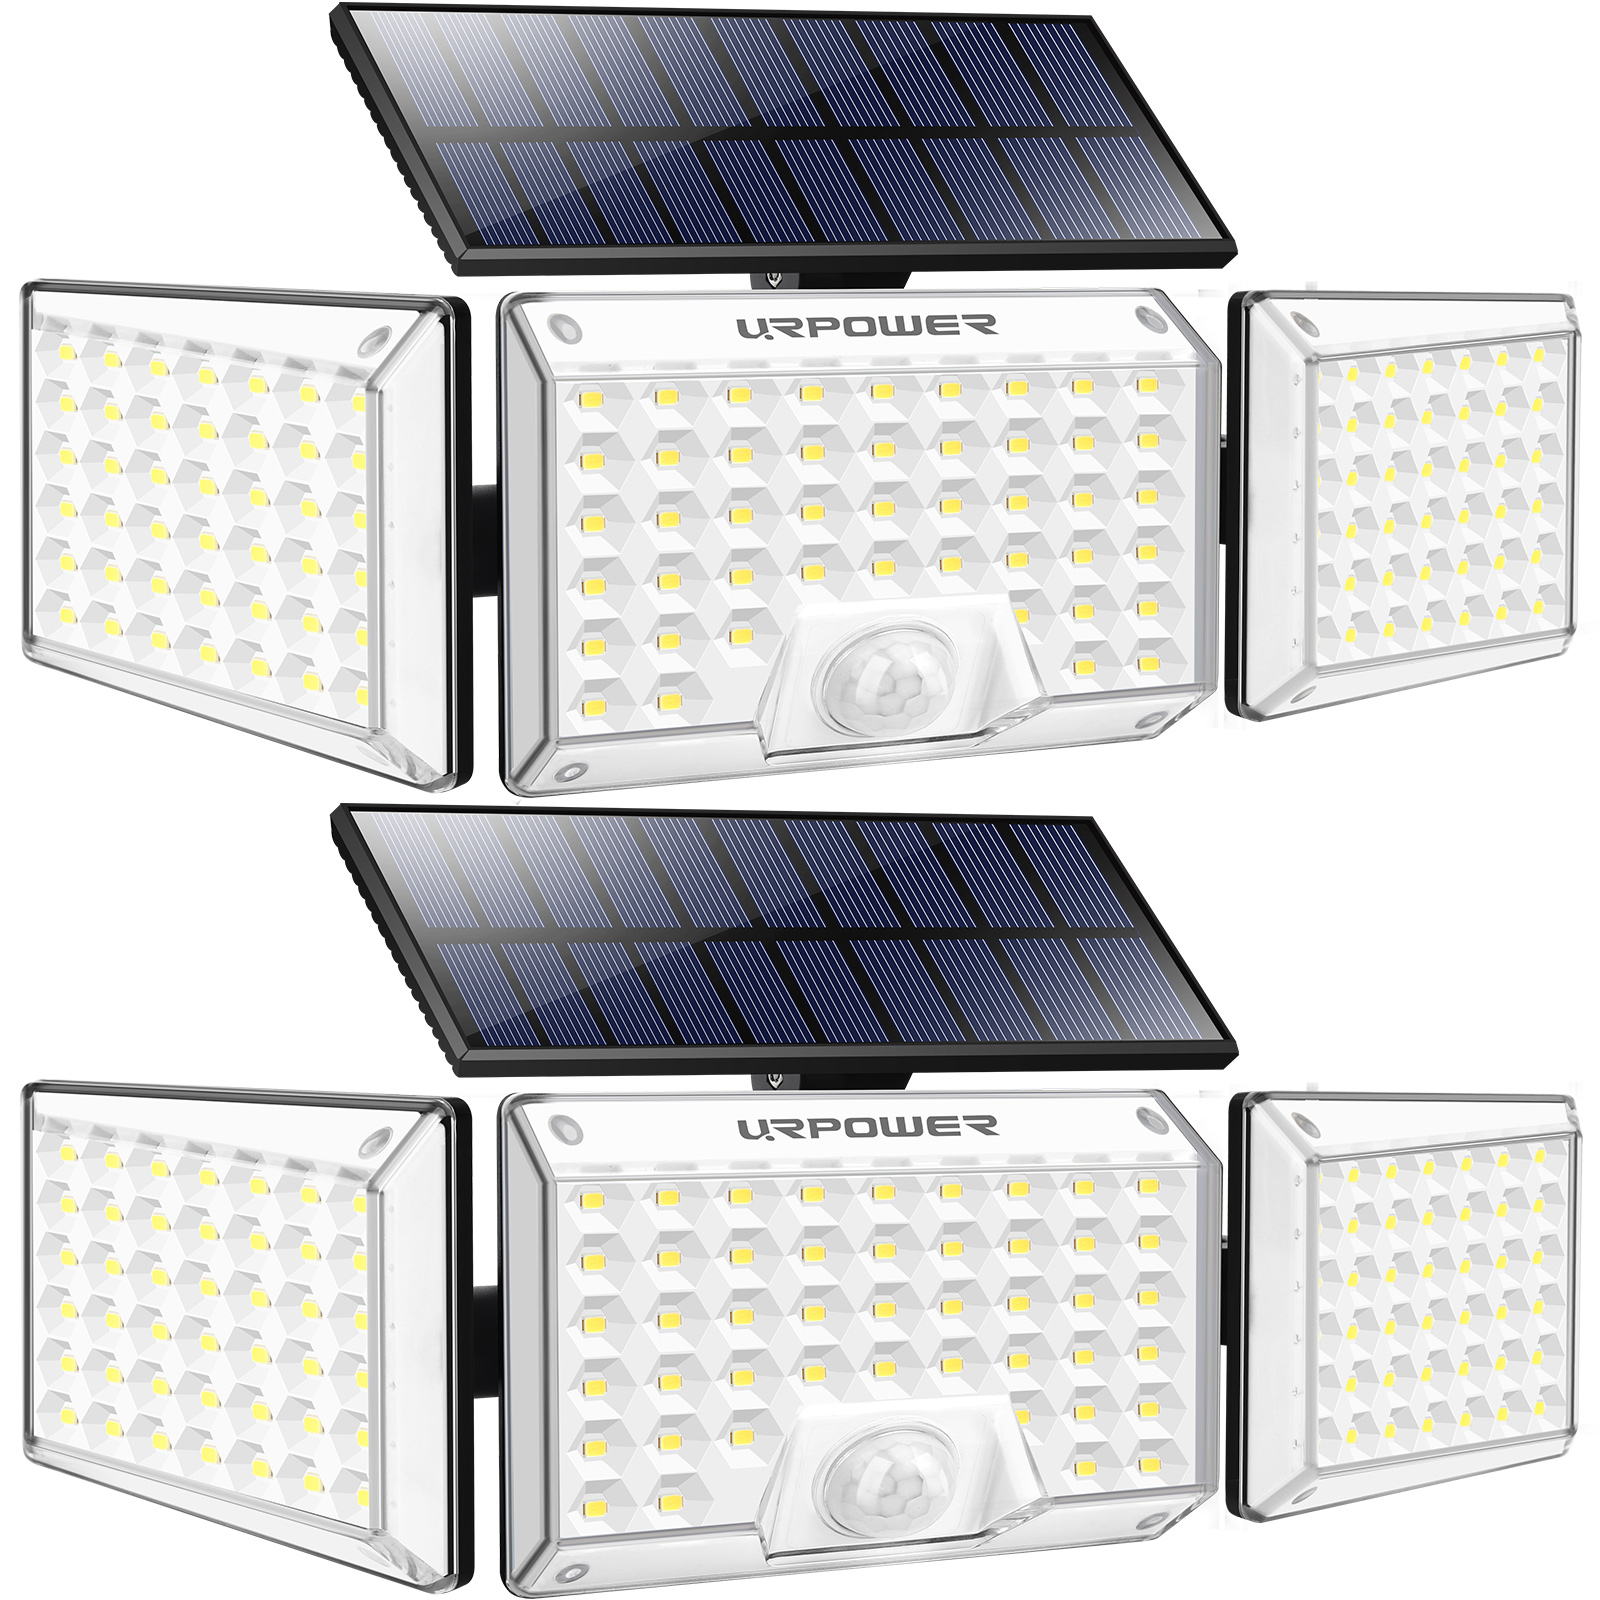 URPOWER 130 LED Solar Lights Outdoor, 1000LM 3-Head Adjustable Solar Motion Sensor Security Lights 2 Pack